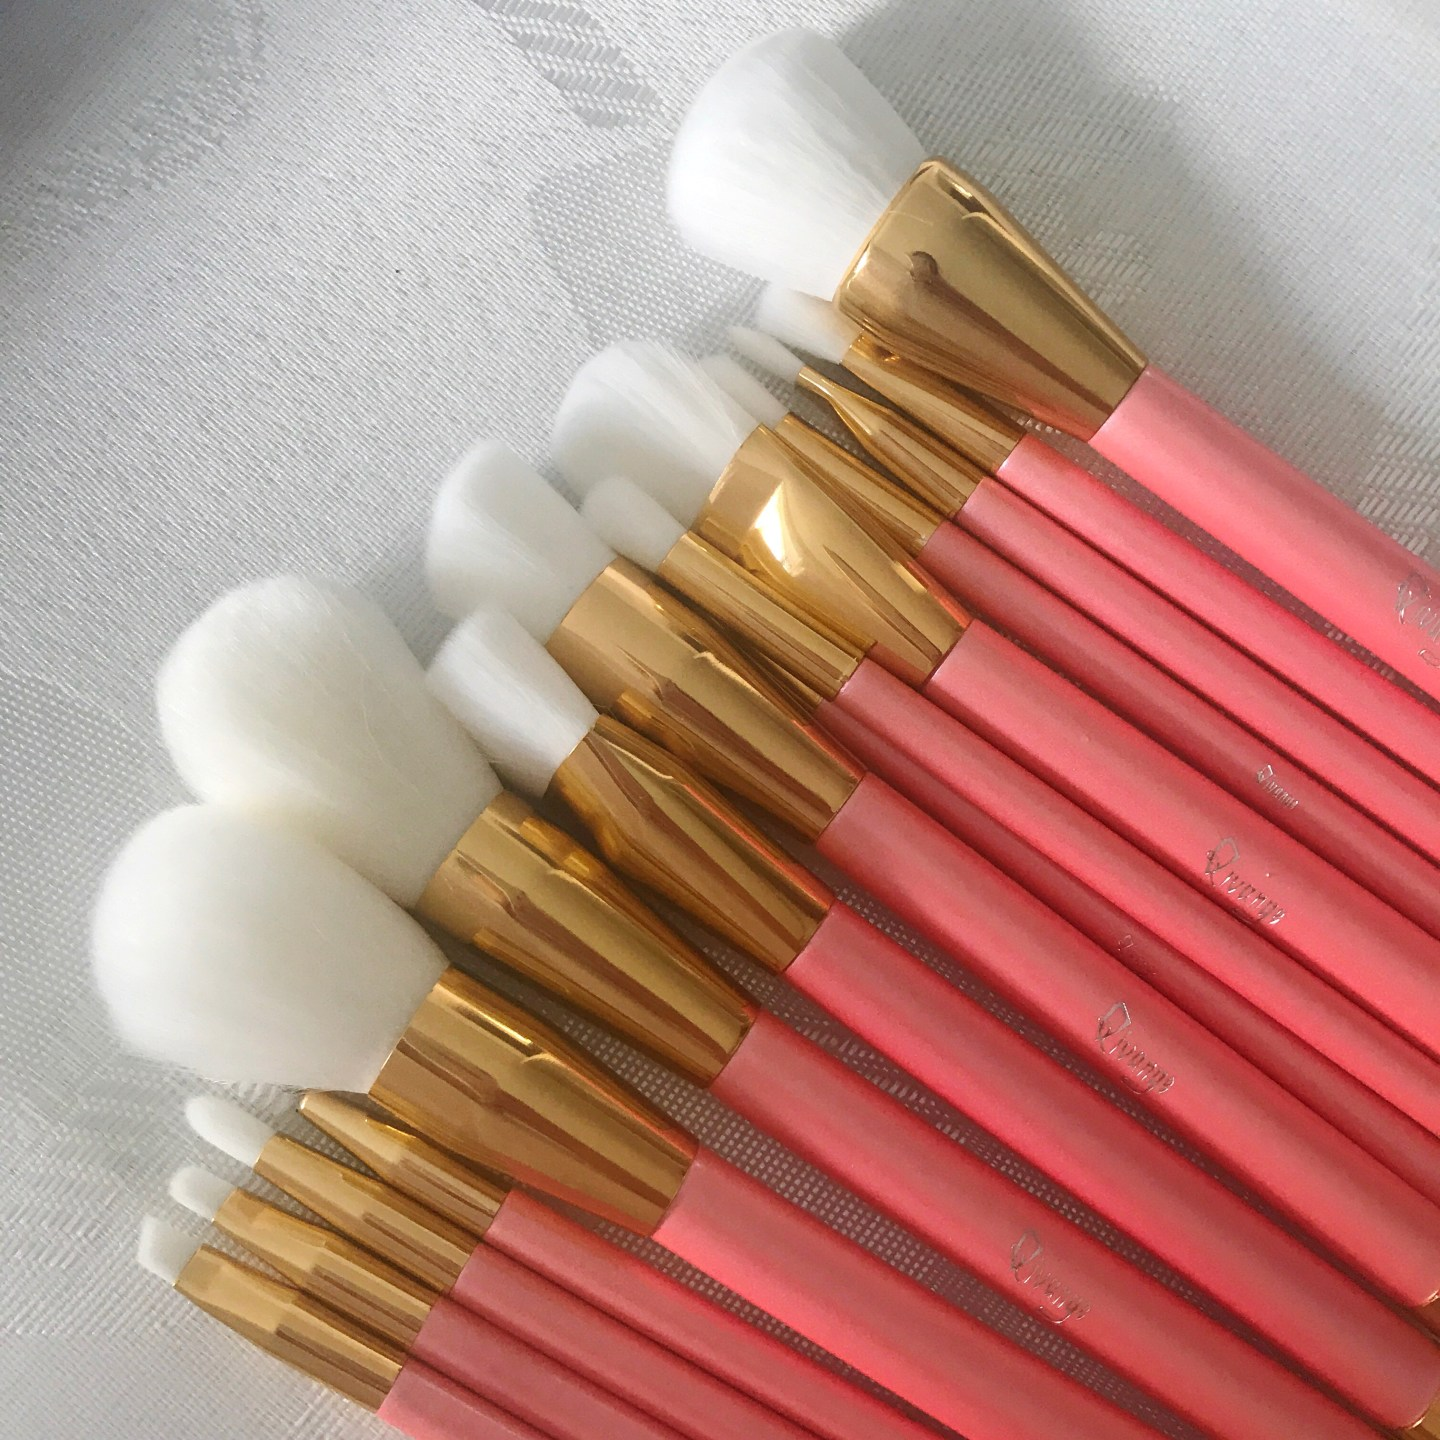 Bargain make-up brushes laid out